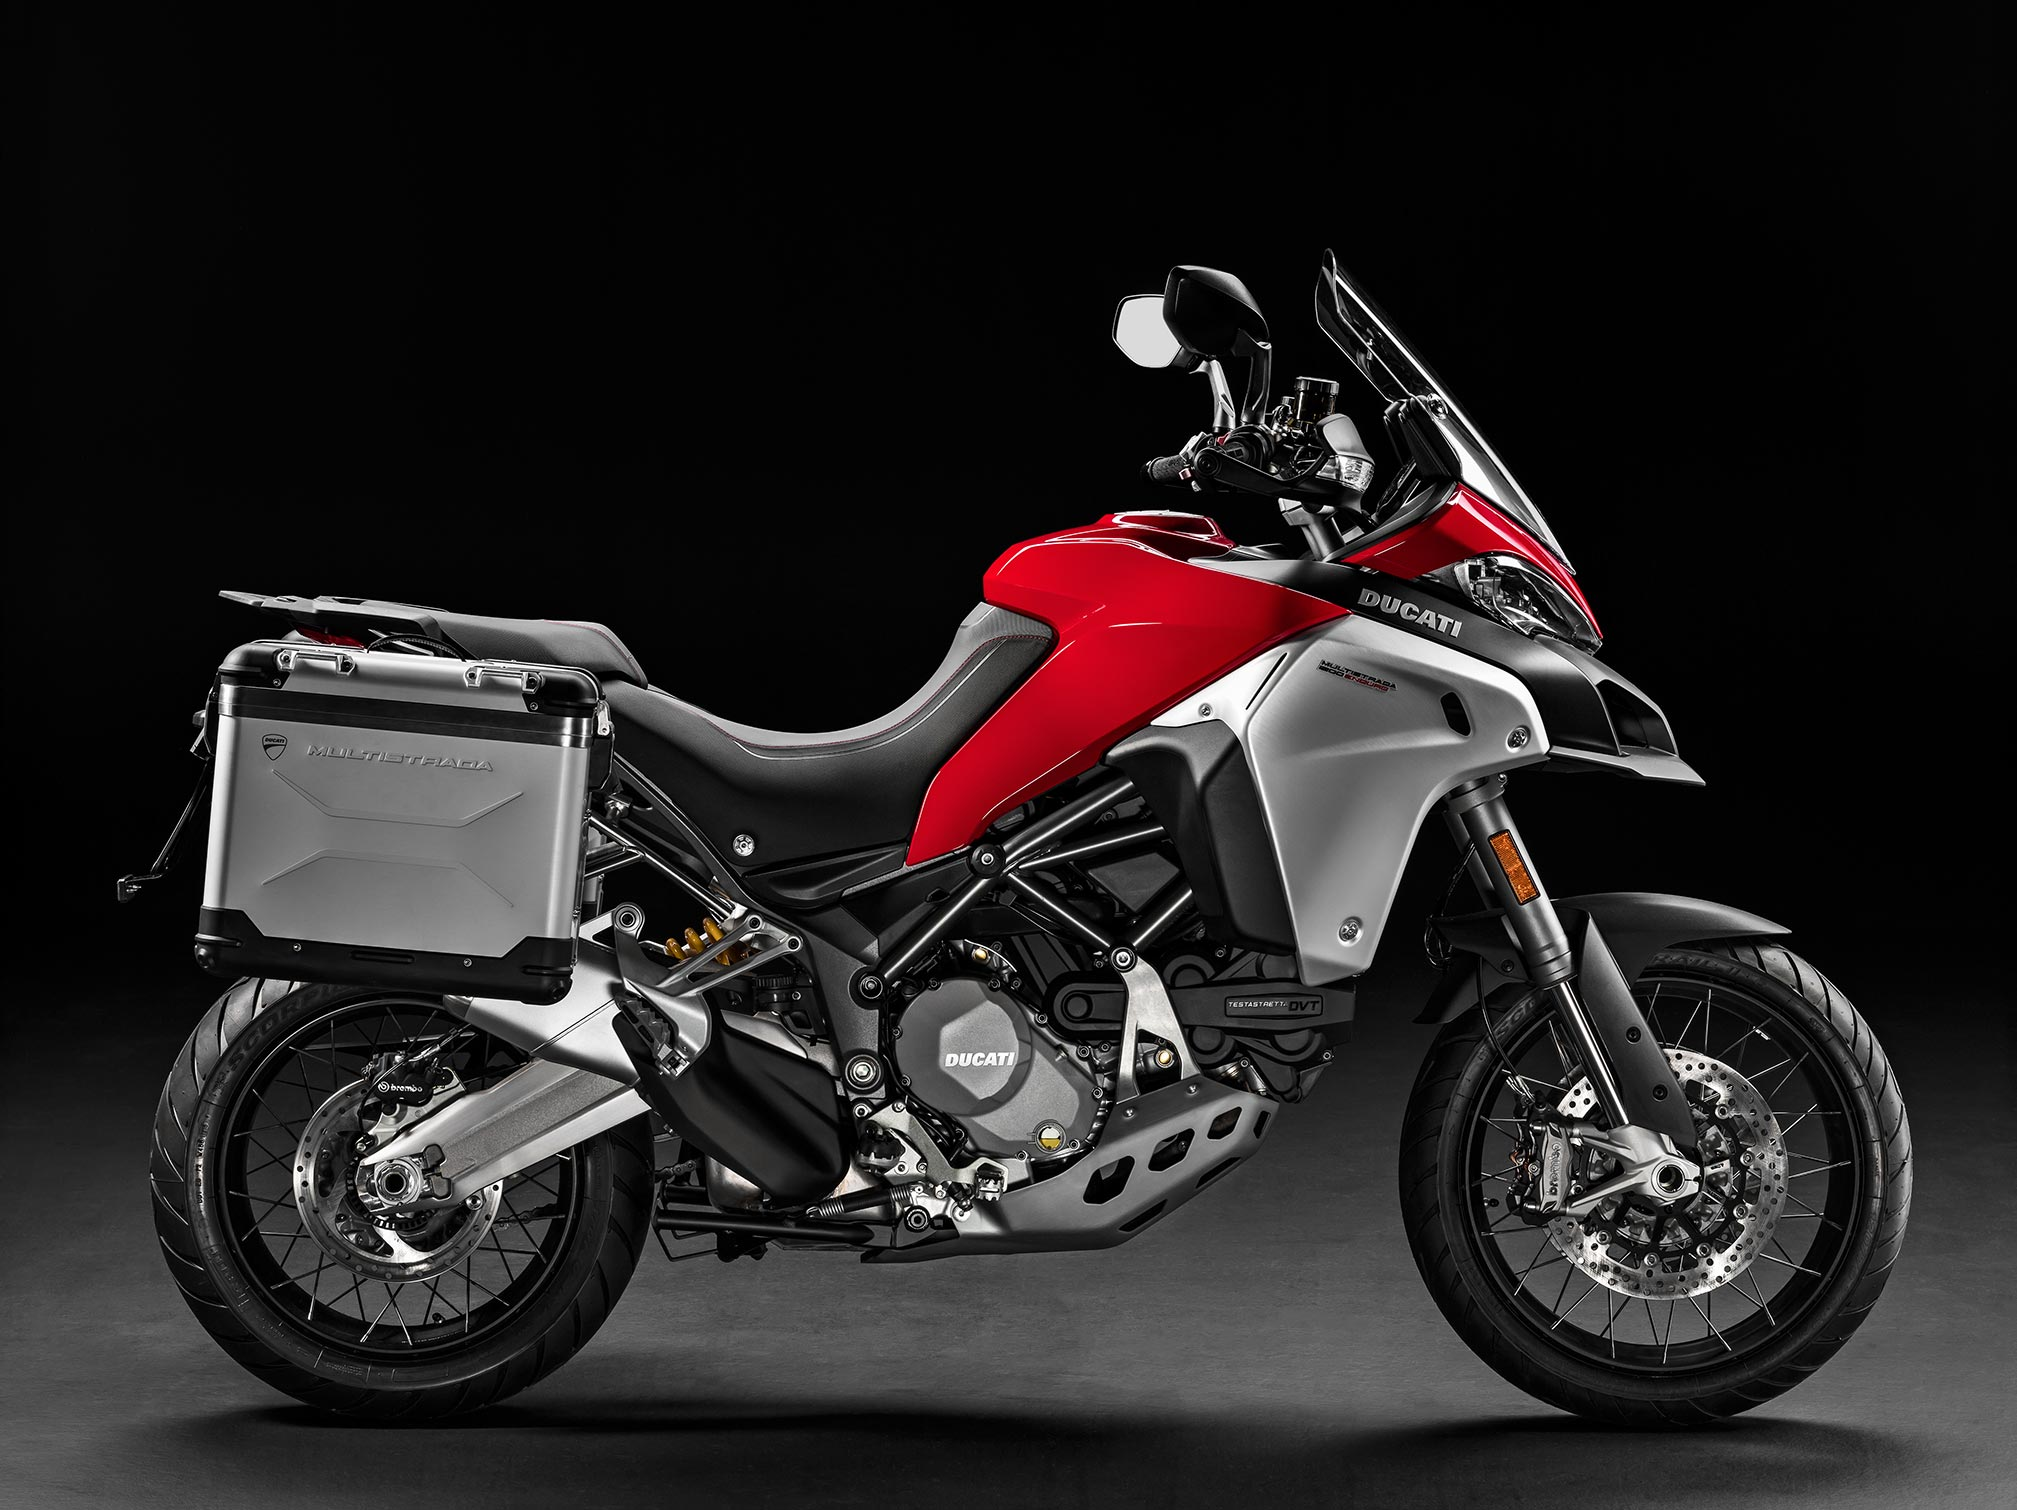 2017 ducati multistrada 1200 enduro review. Black Bedroom Furniture Sets. Home Design Ideas